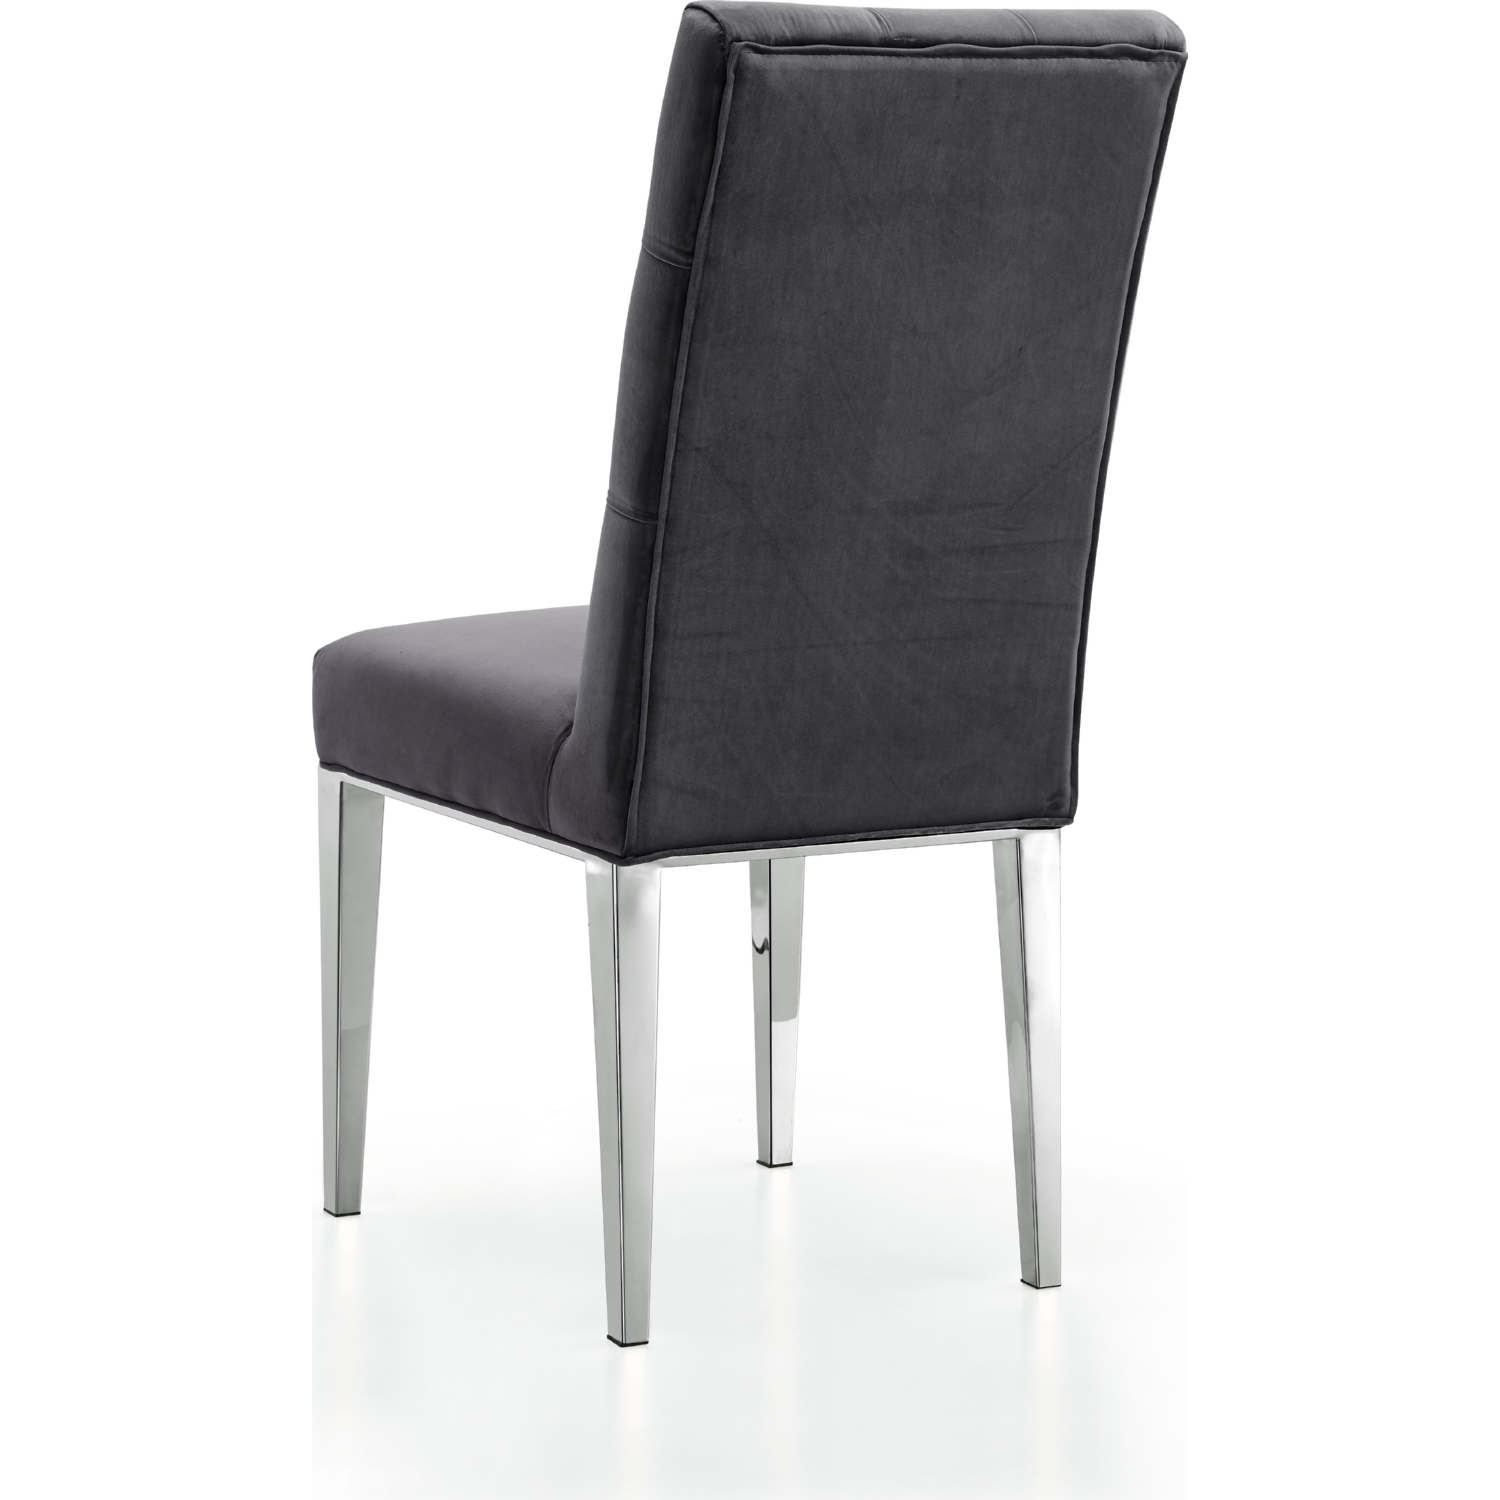 Meridian Furniture 732Grey C Juno Dining Chair in Tufted Grey